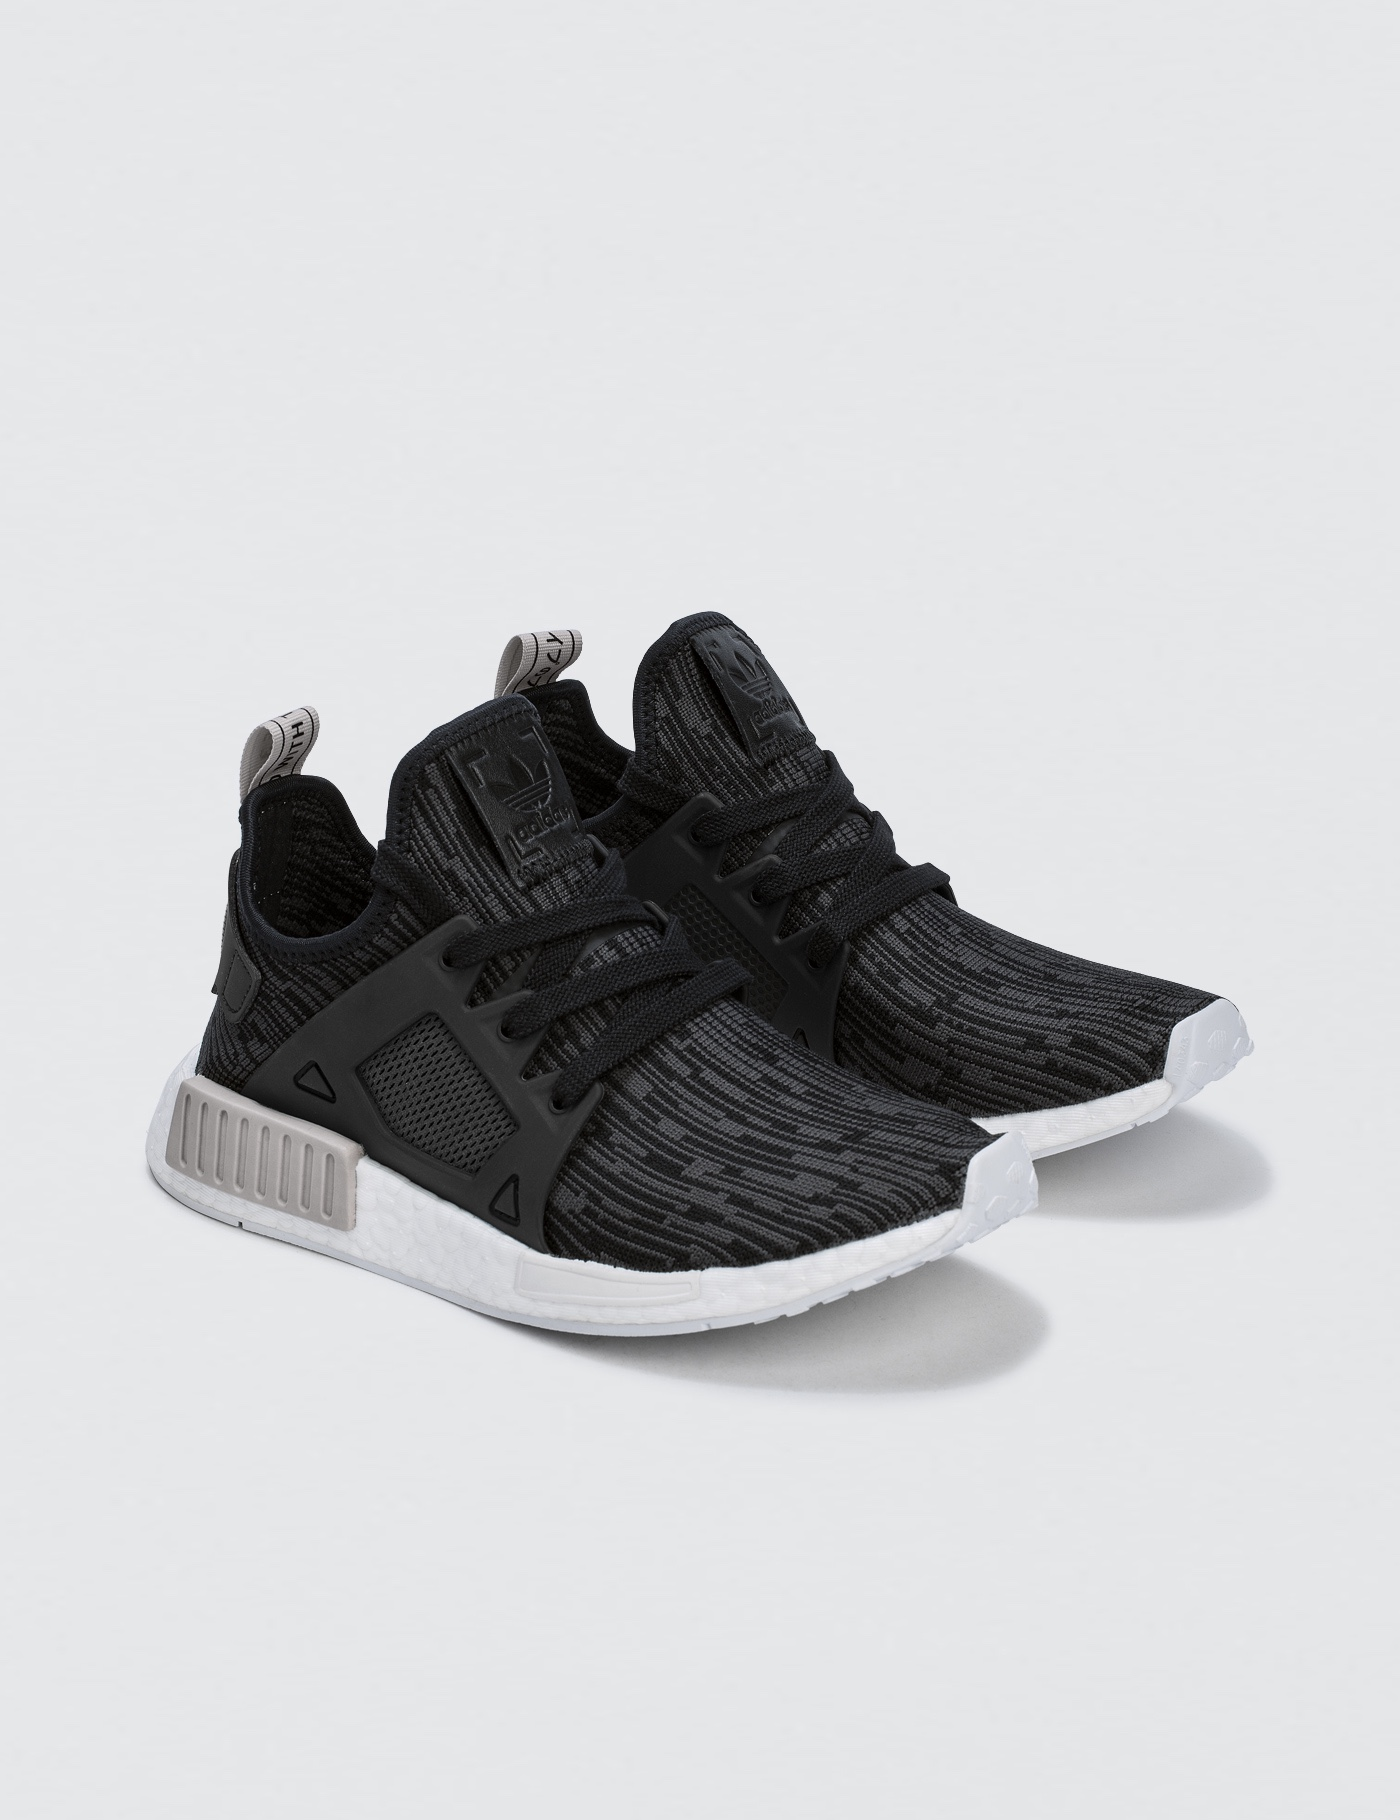 latest design various colors new appearance NMD XR1 Primeknit W, Adidas Originals